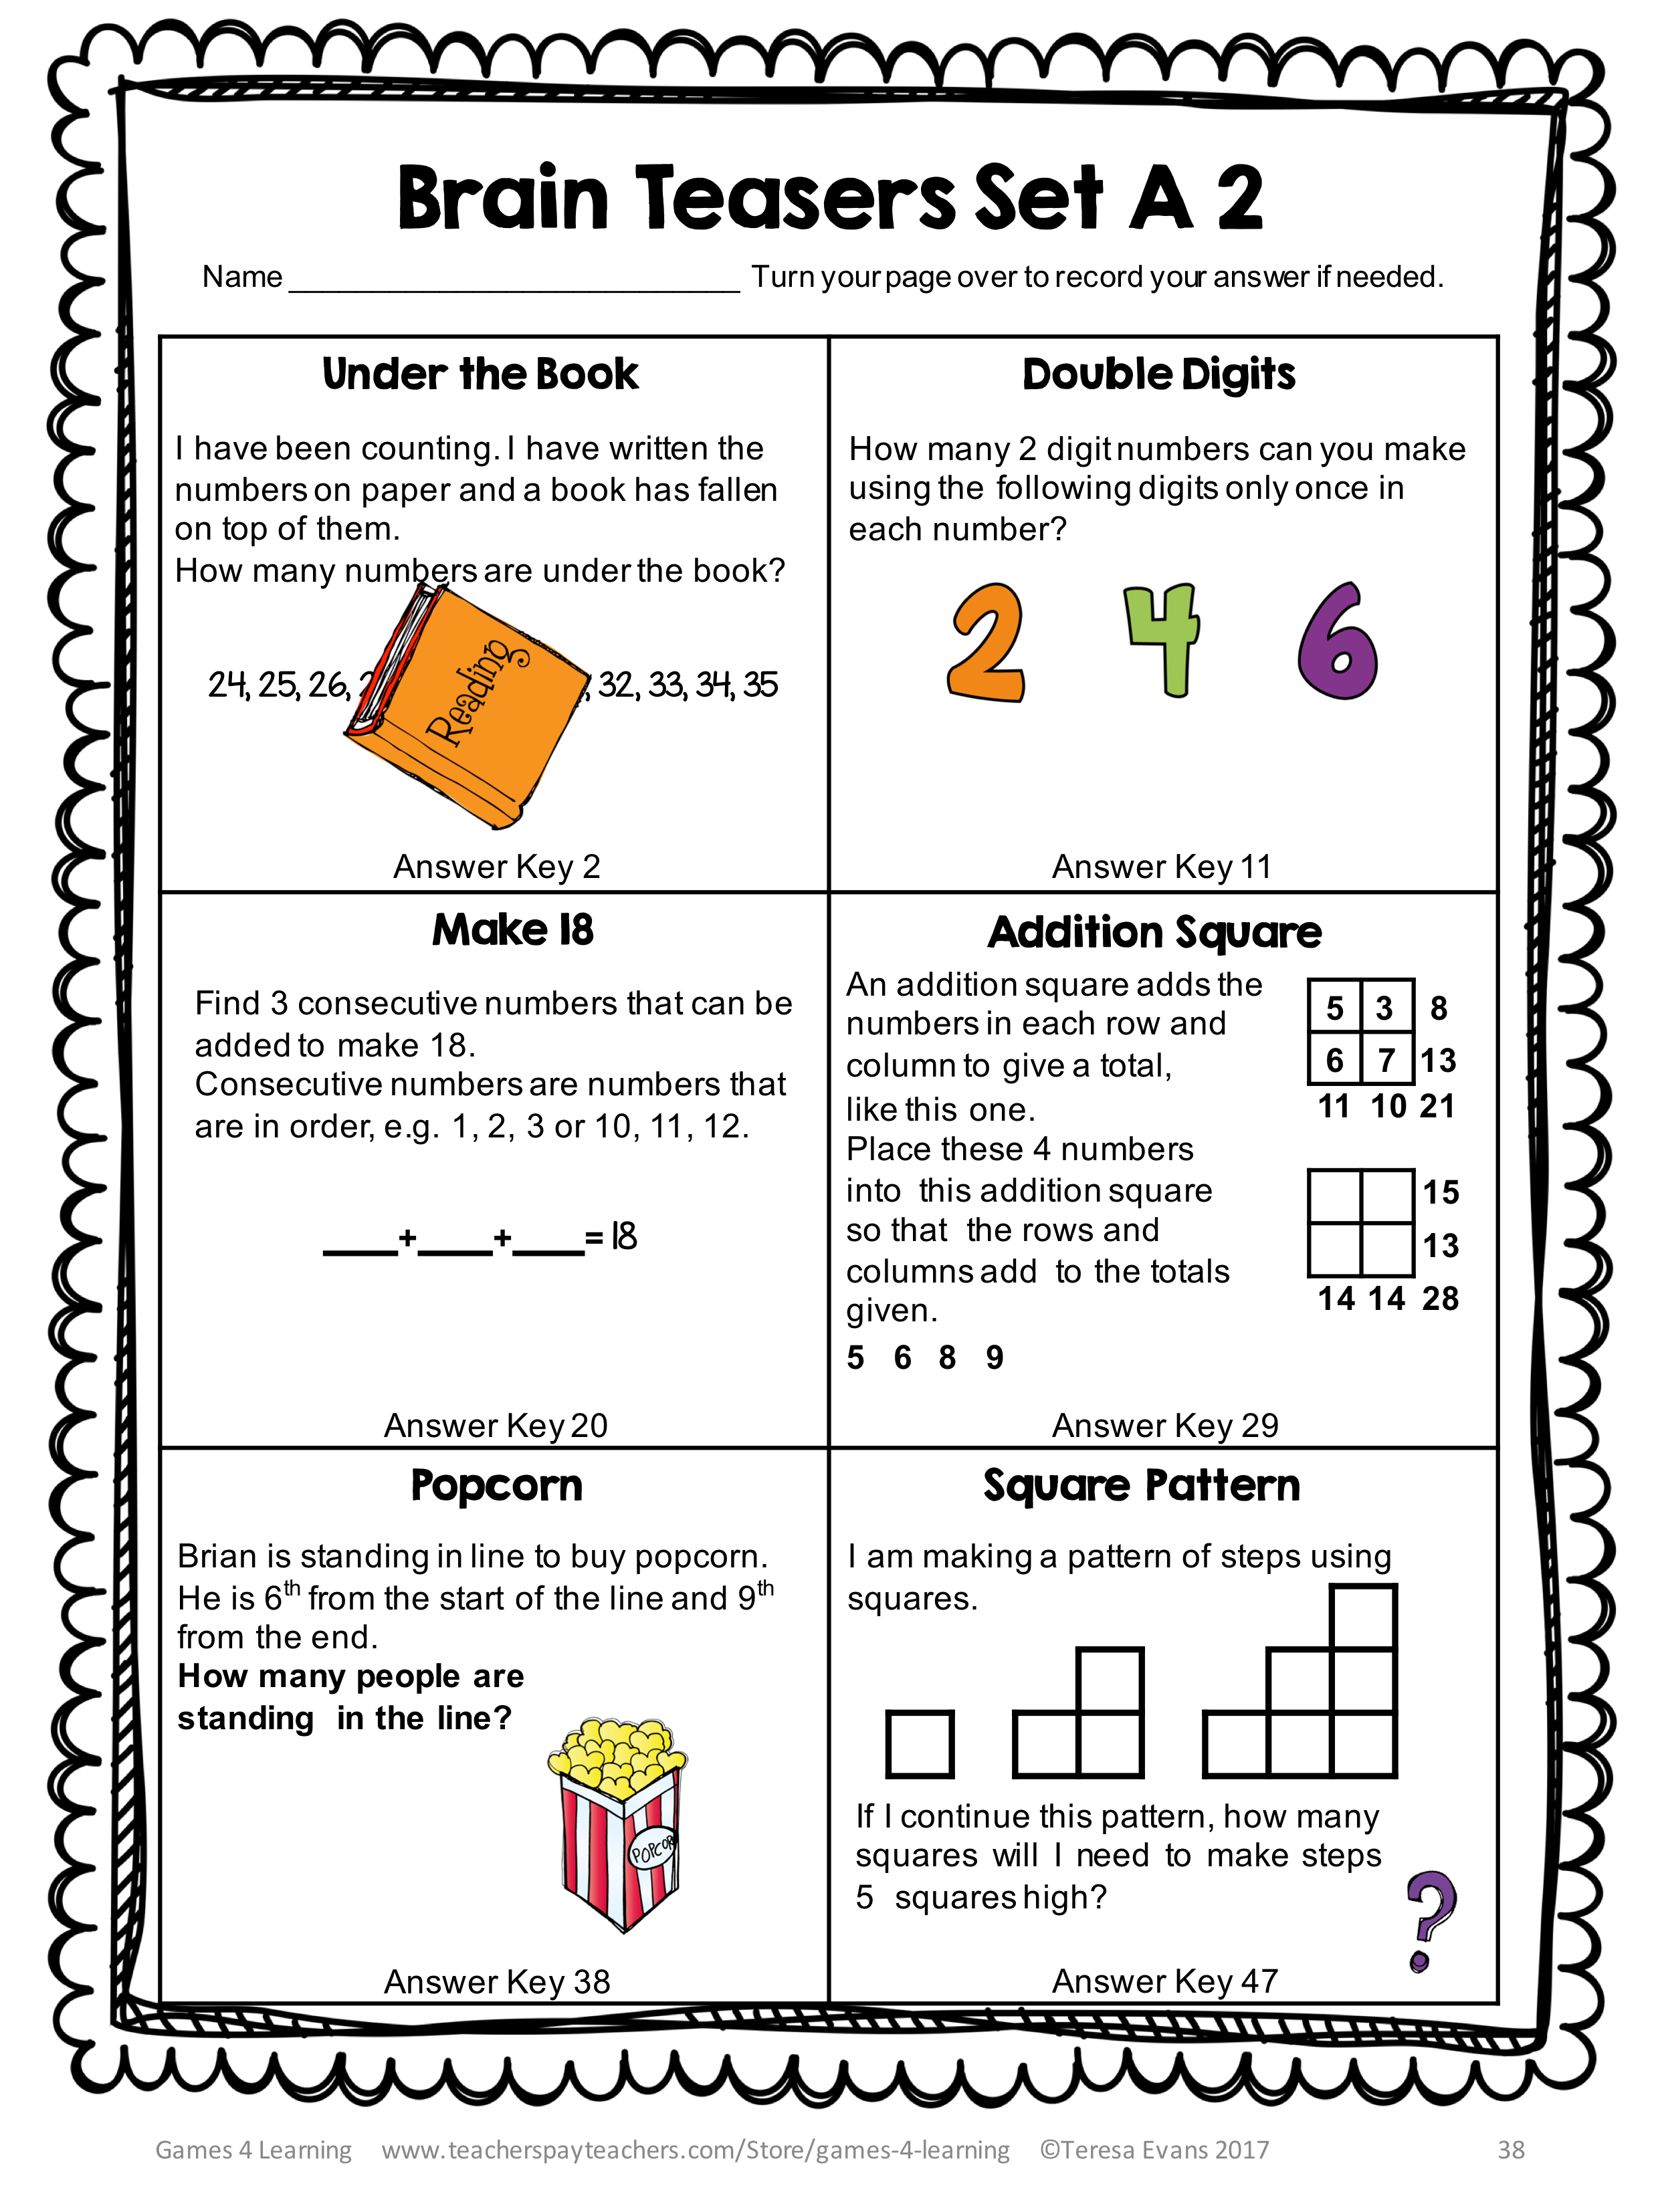 Math Task Cards Math Problems And Math Brain Teasers Cards Set A